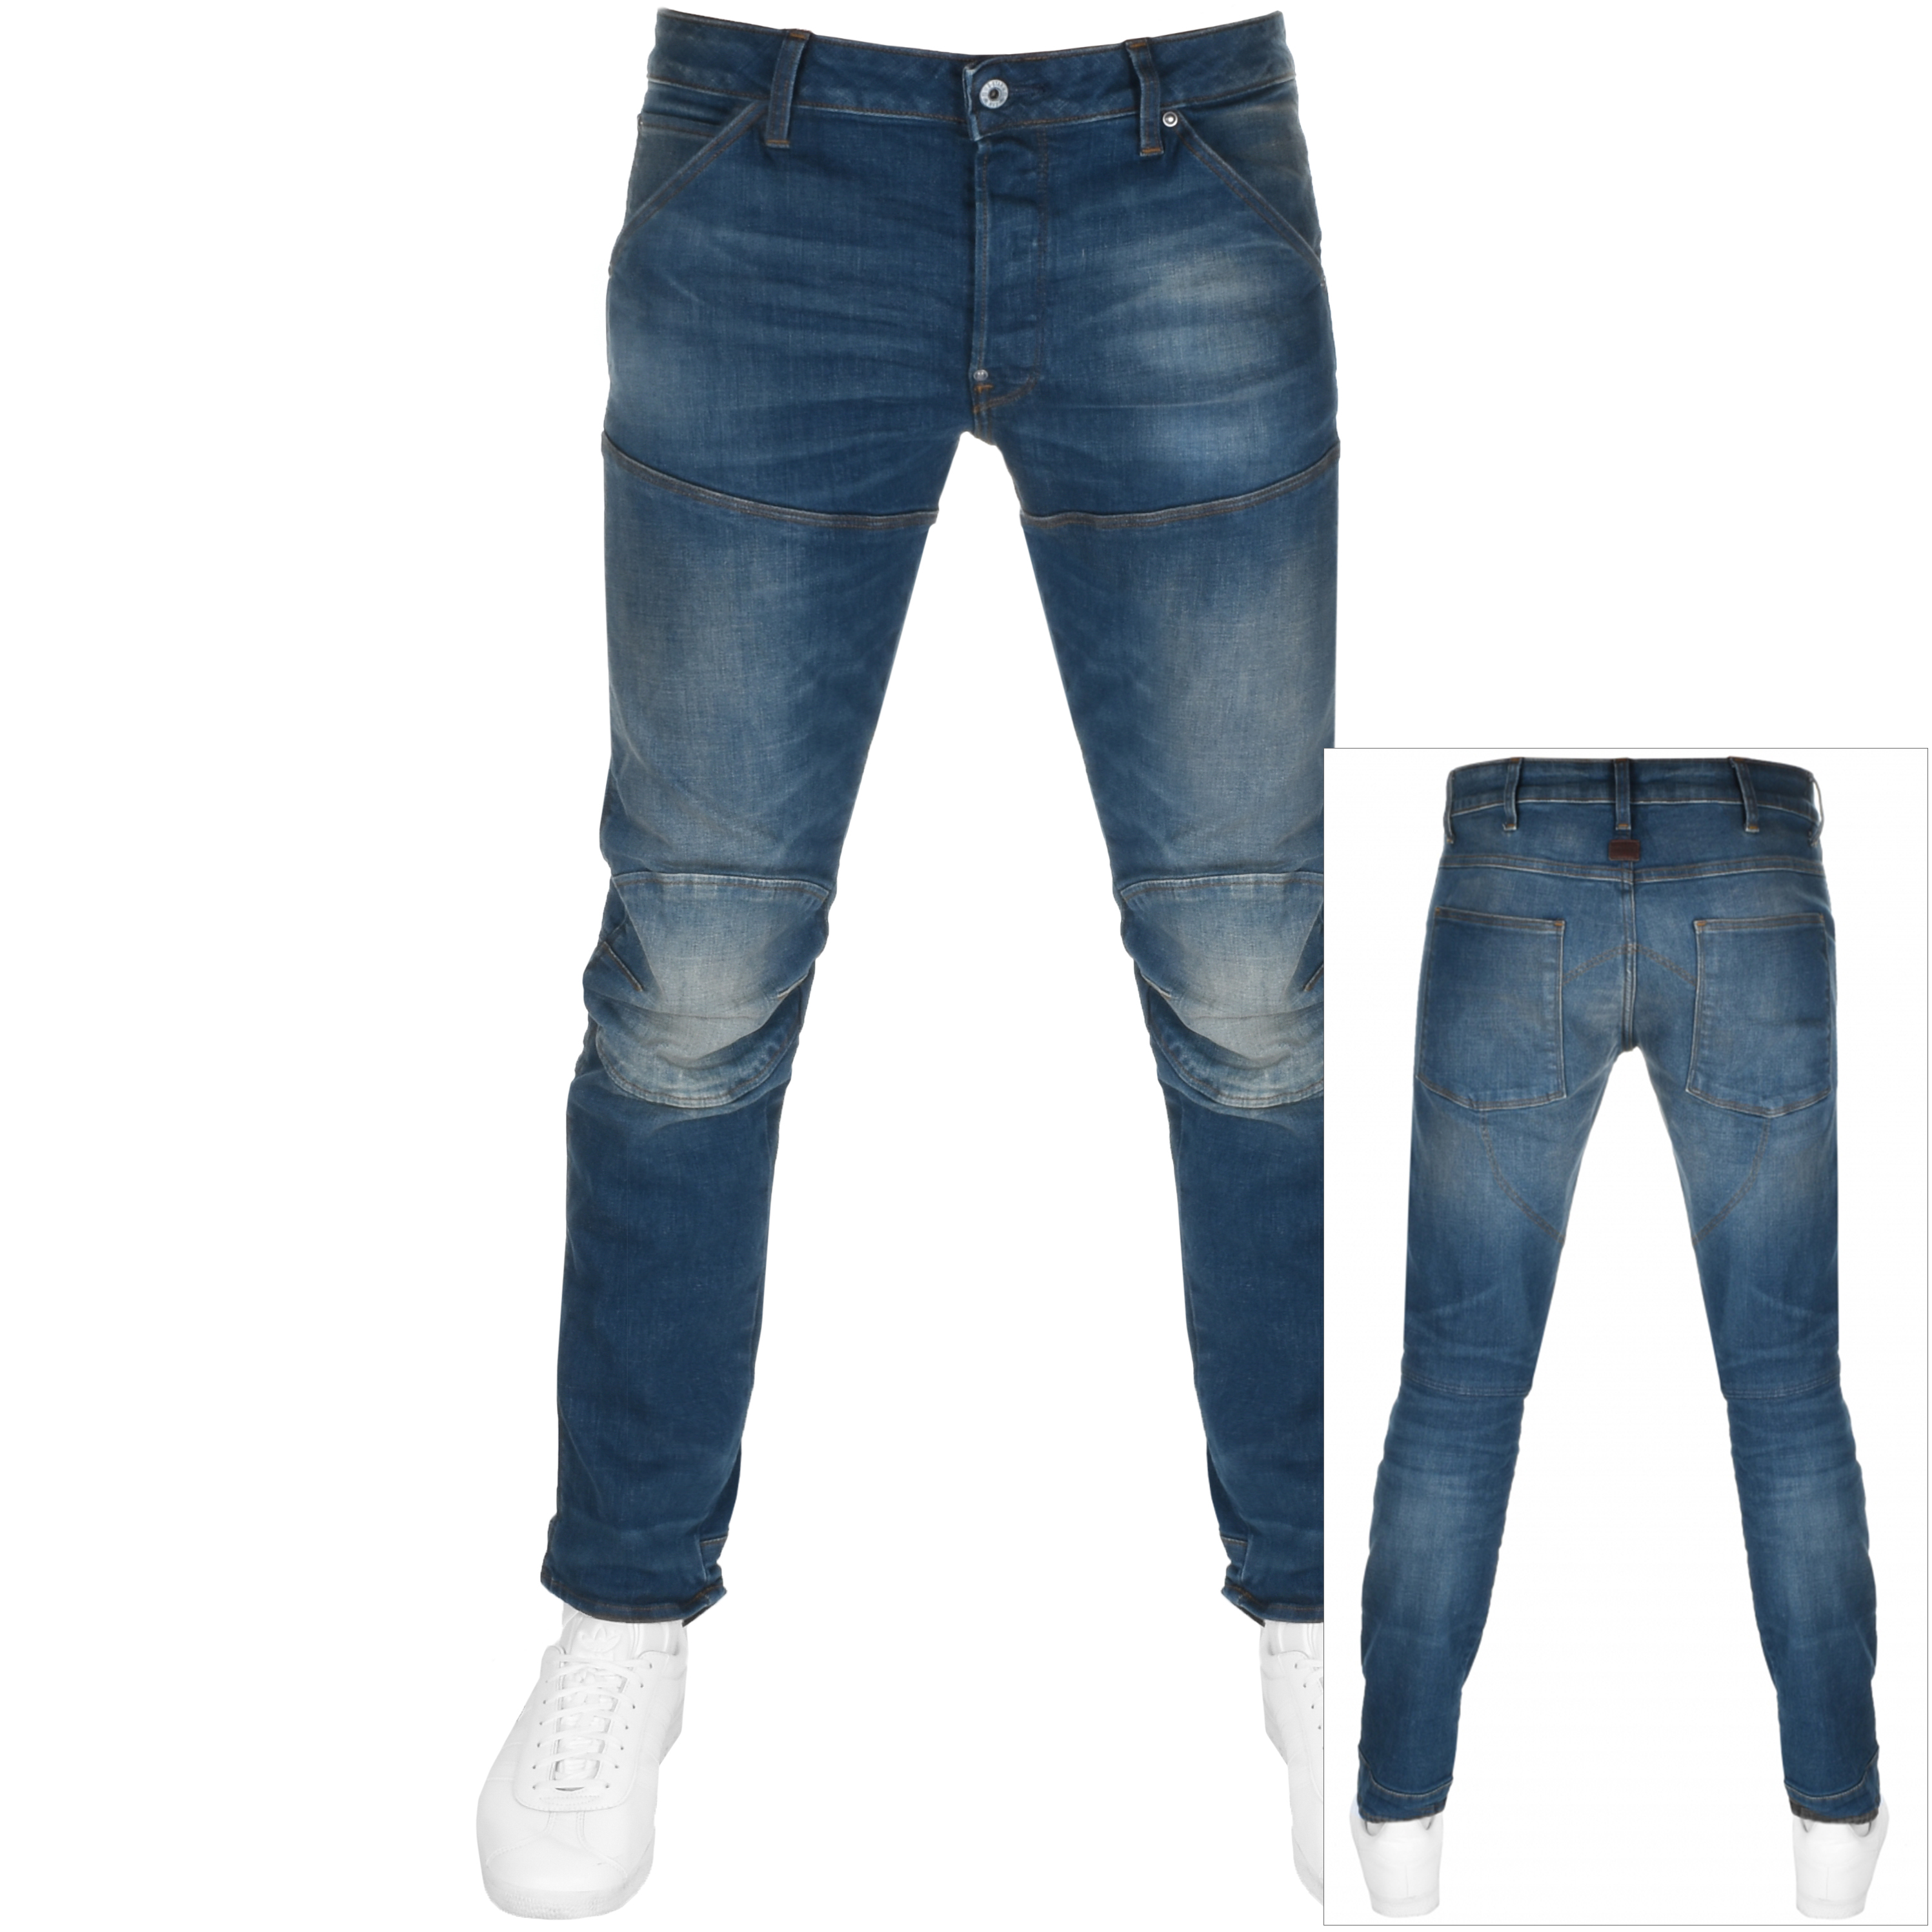 2f084997 Product Image for G Star Raw 5620 Elwood 3D Slim Jeans Blue